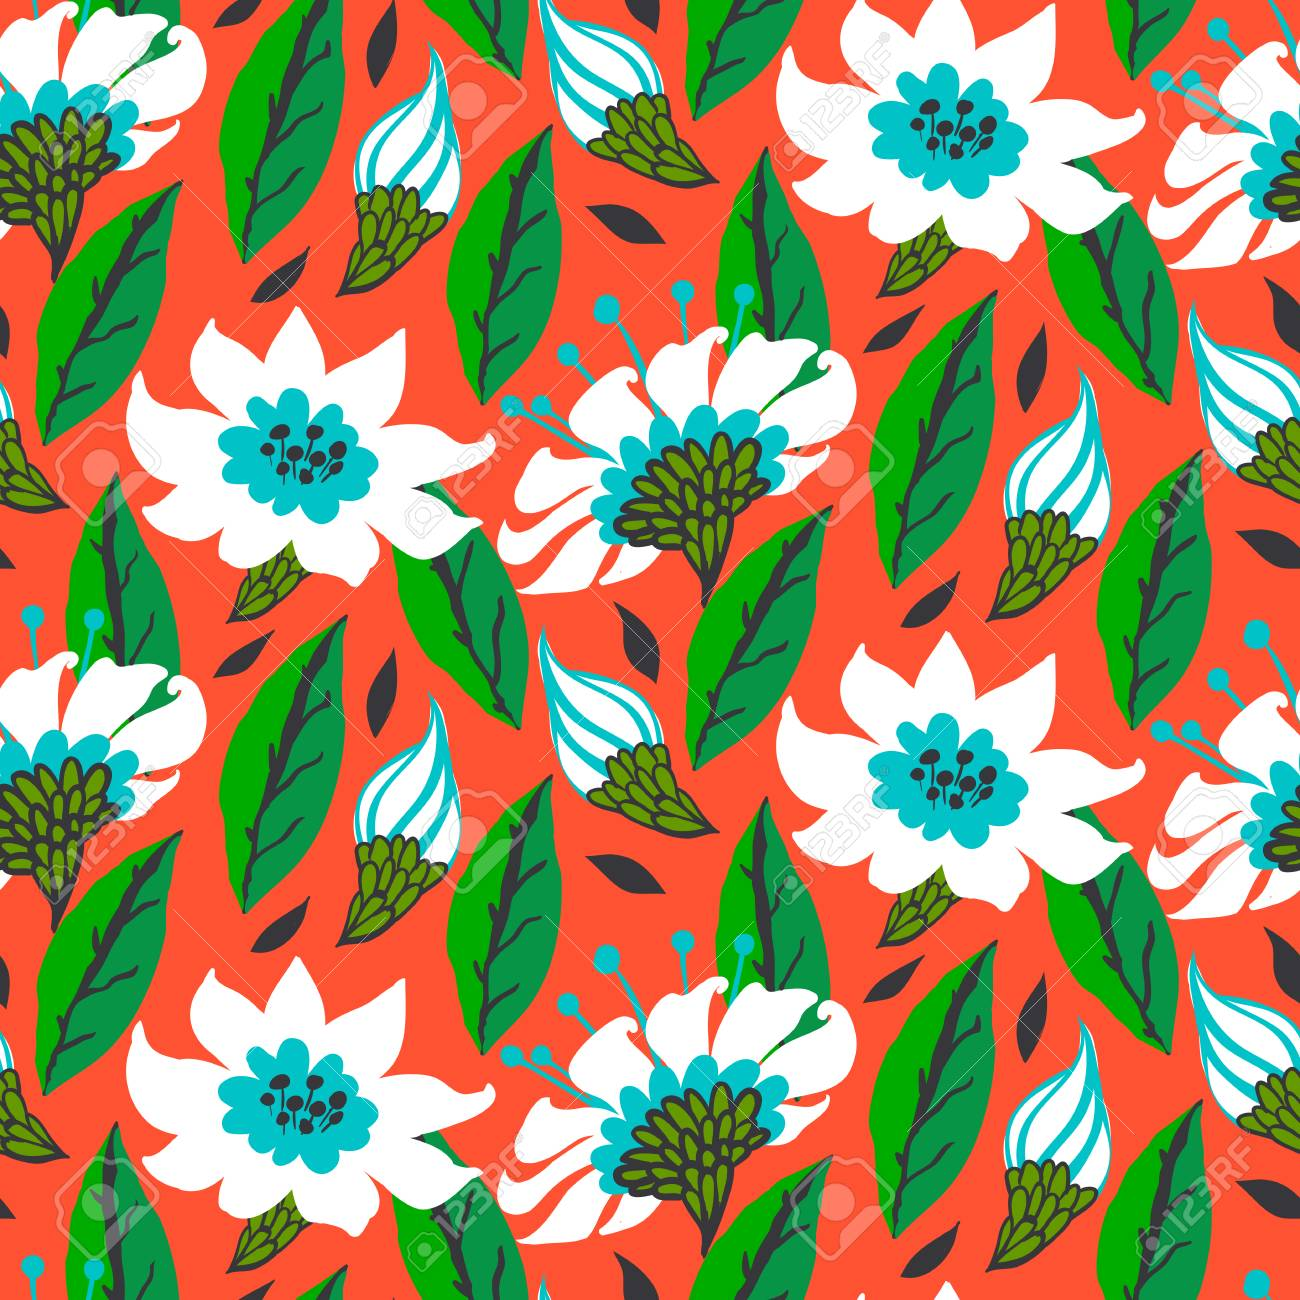 Vector seamless floral pattern with daisy flowers on bright red. Stock Vector - 25188068